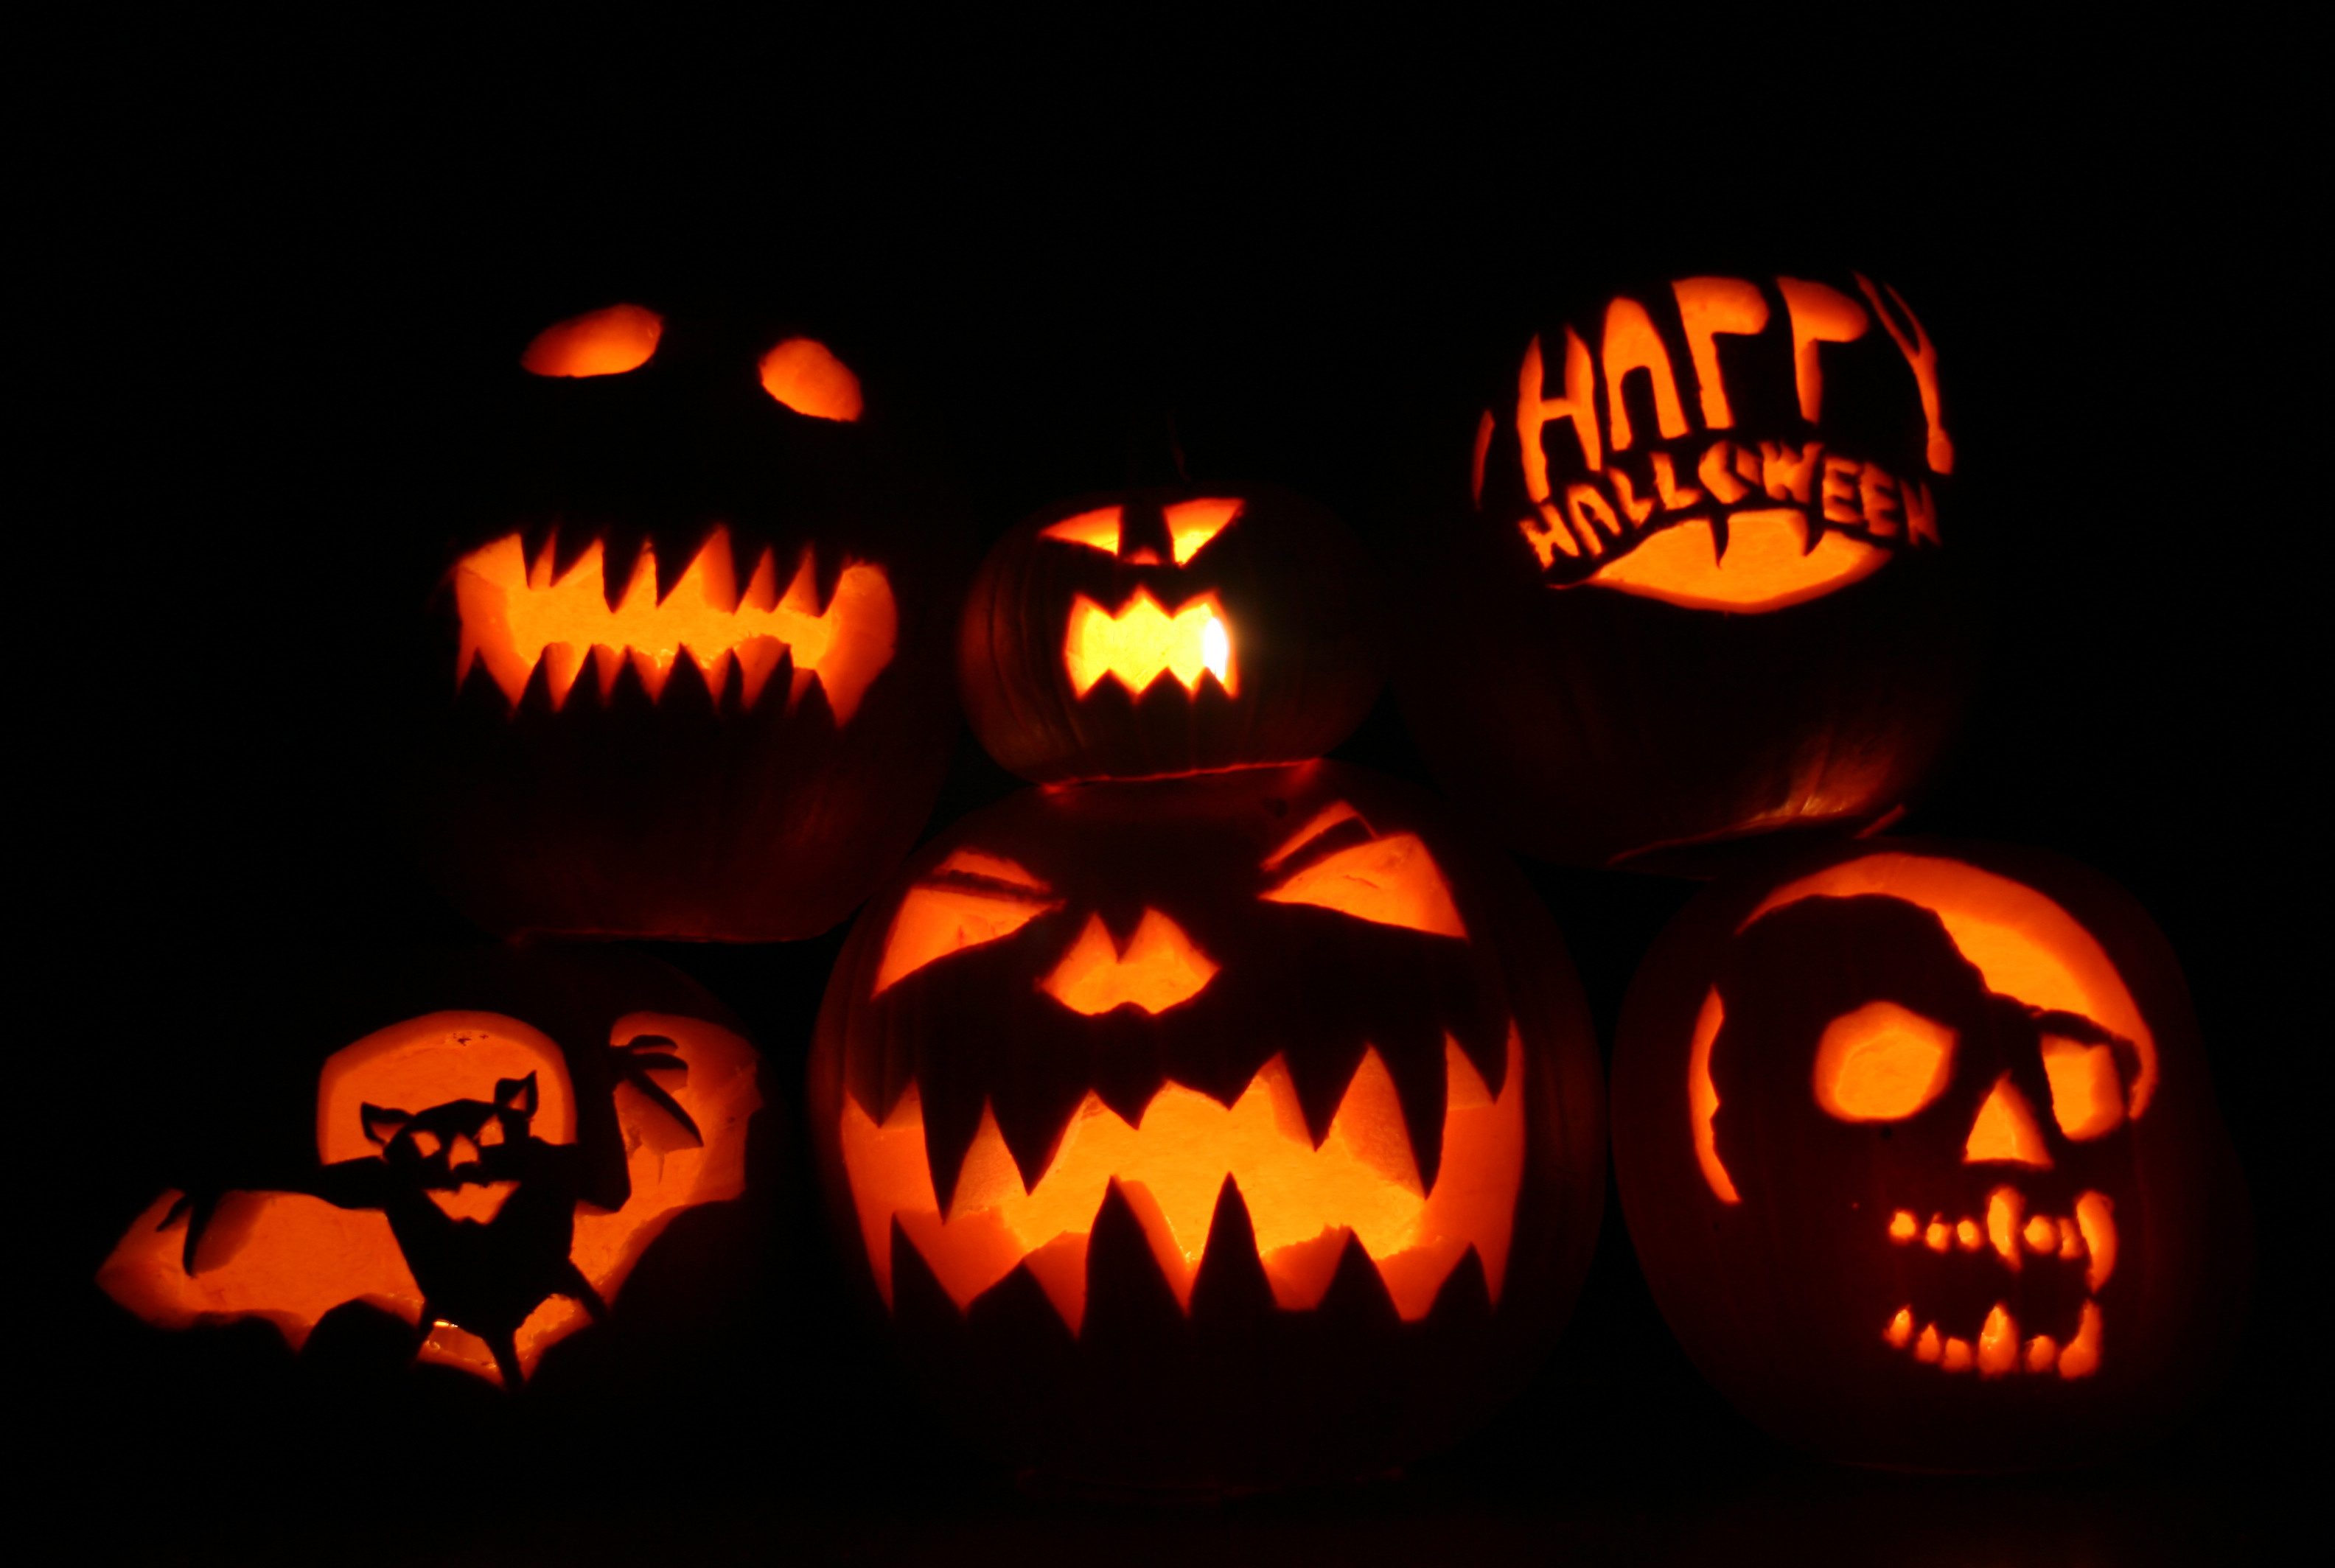 Dark Halloween Pumpkin HD Wallpapers.